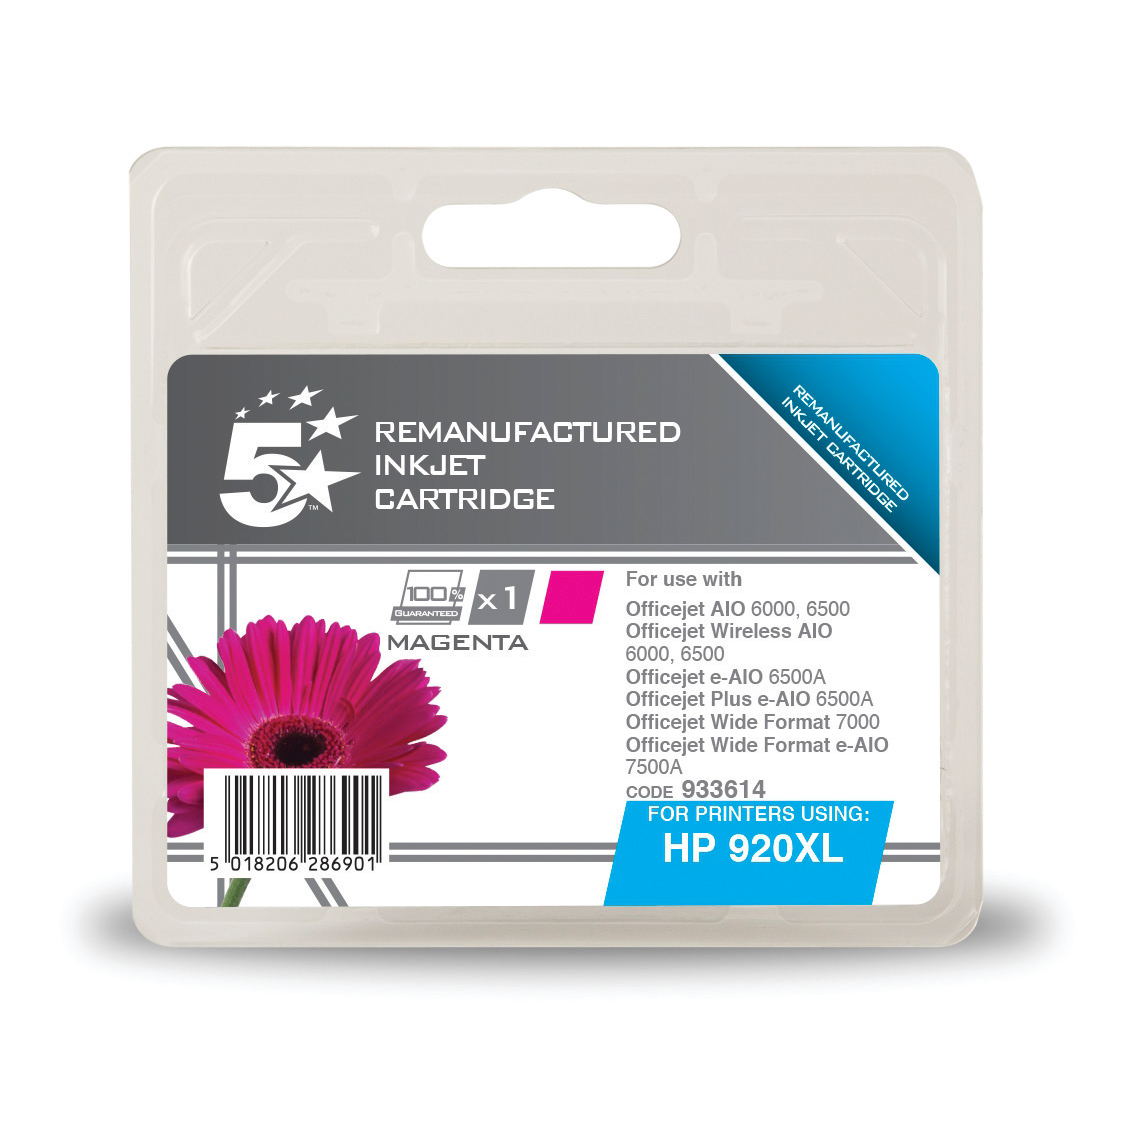 5 Star Office Reman Inkjet Cartridge HY Page Life 700pp 6ml Magenta [HP No.920XL CD973AE Alternative]